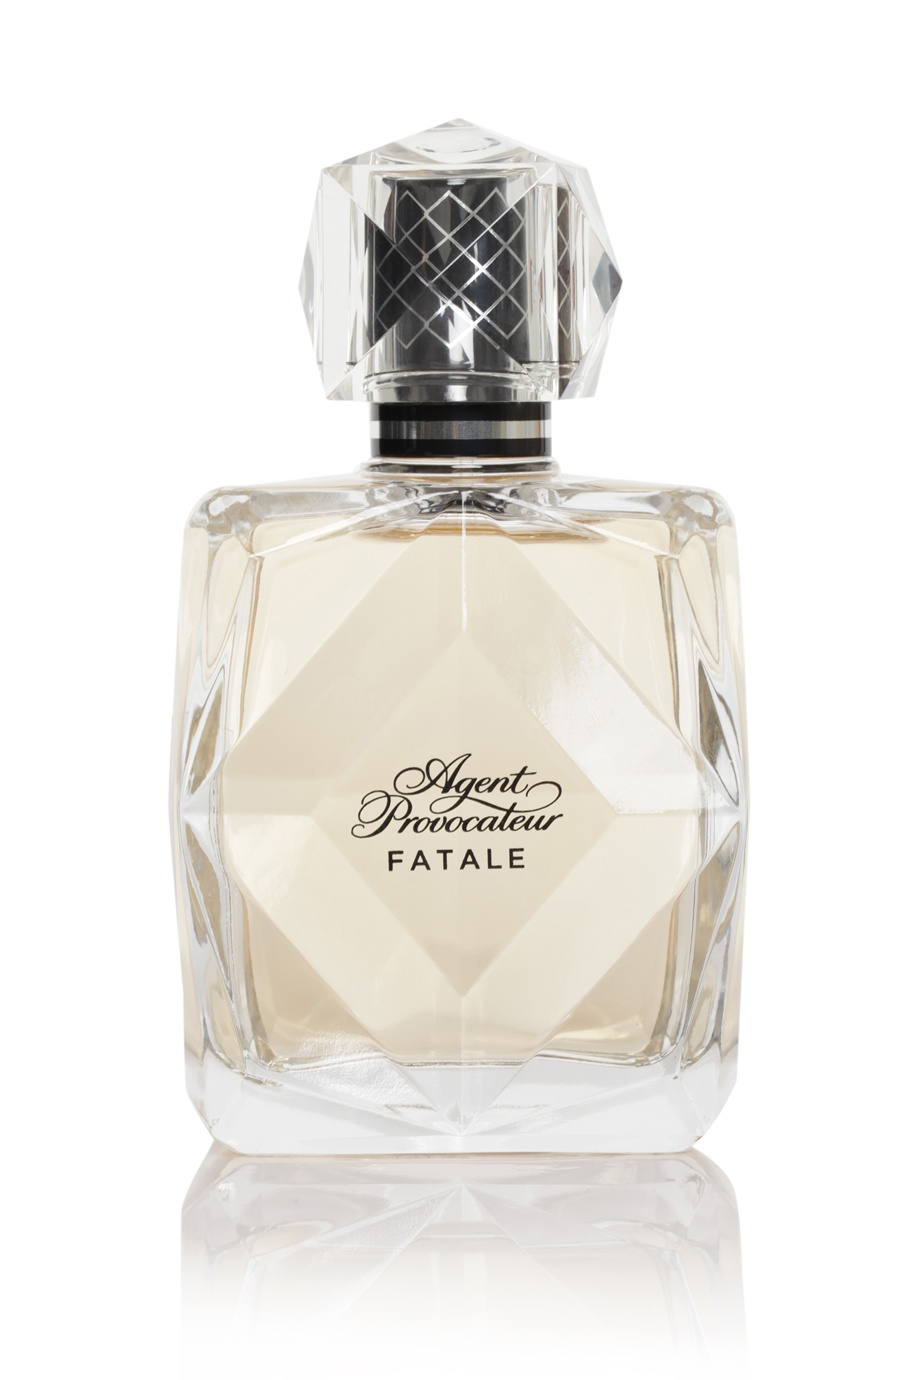 Парфюмерная вода Fatale 30ml Agent Provocateur (фото)